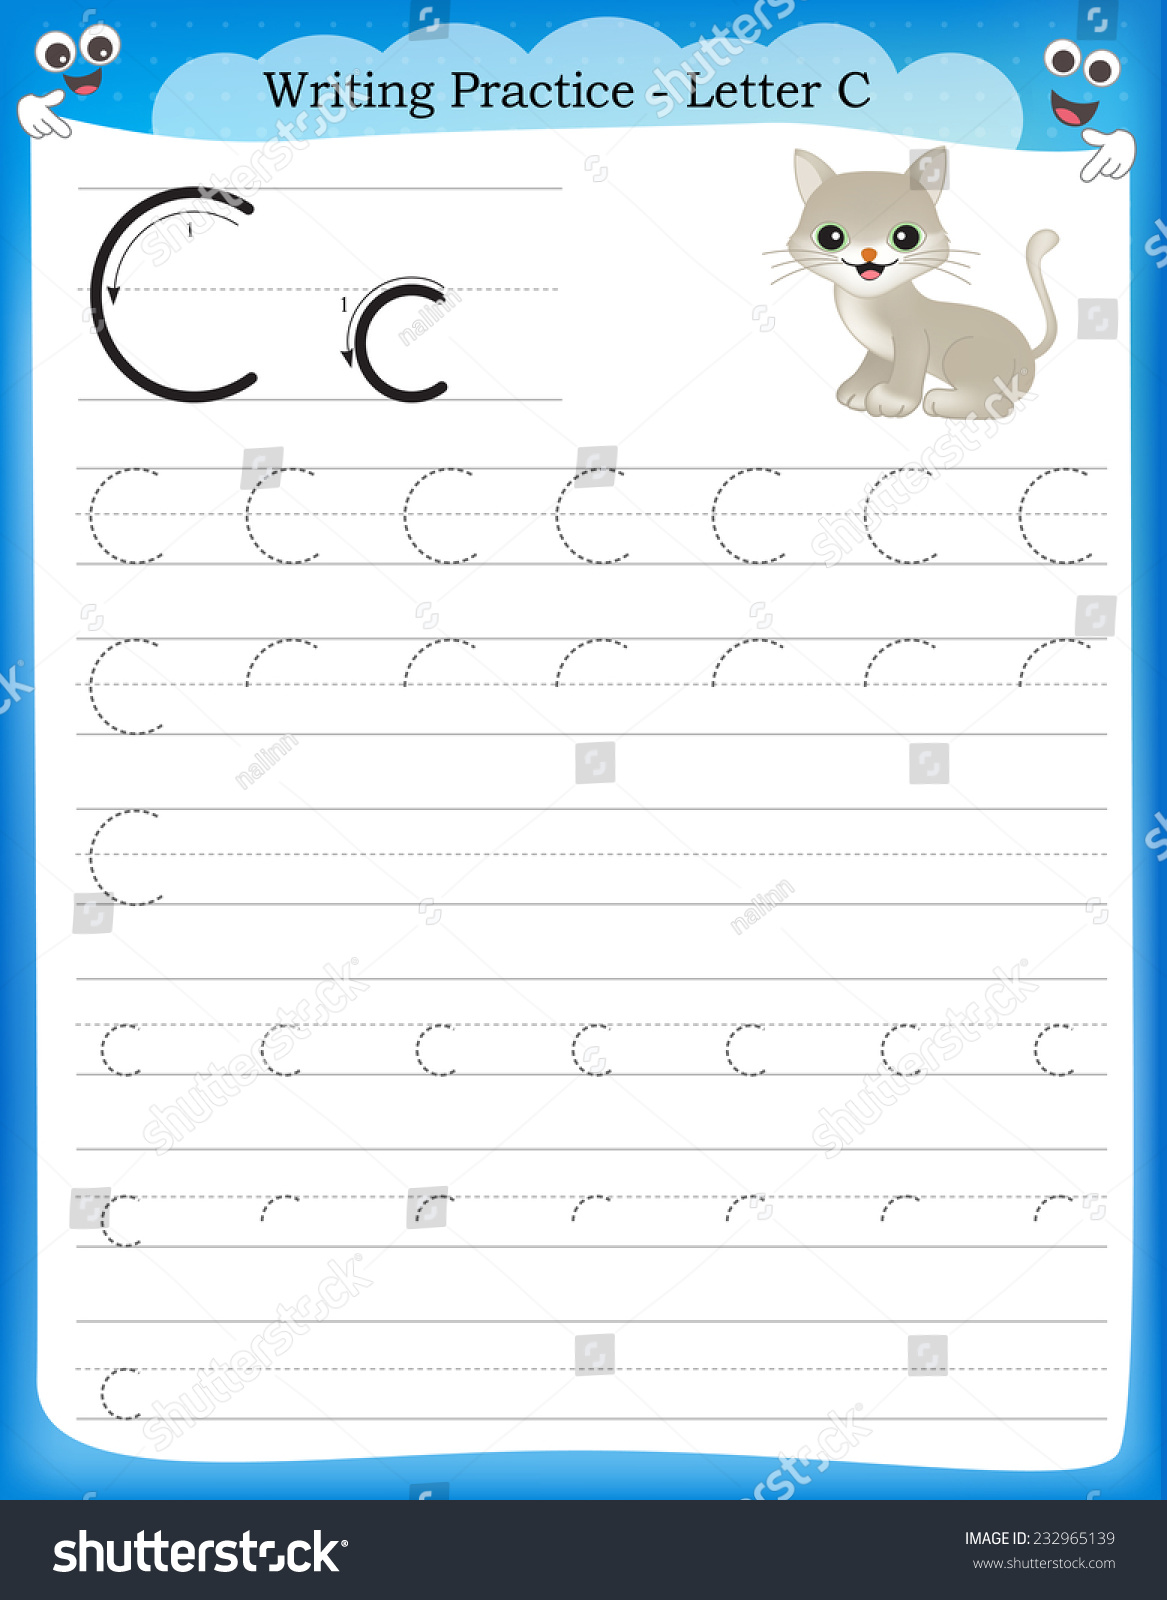 Writing Practice Letter C Printable Worksheet Vector – Letter C Worksheets for Preschool